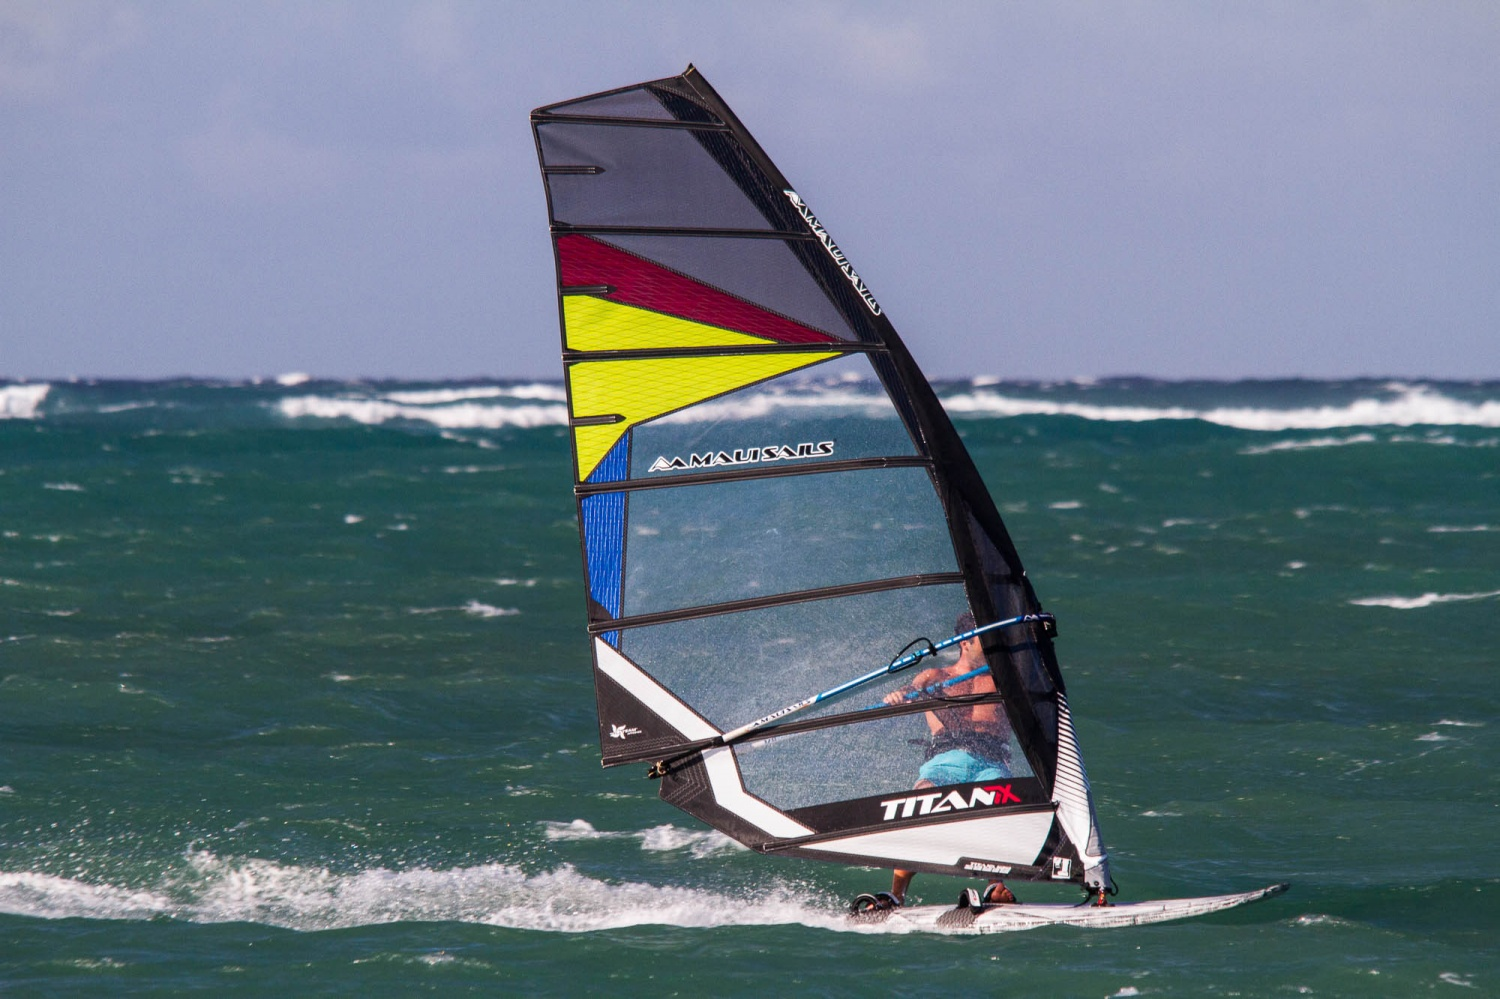 2017 Titan GSX 7 0 | Used gear for sale | MauiSails Hawaii